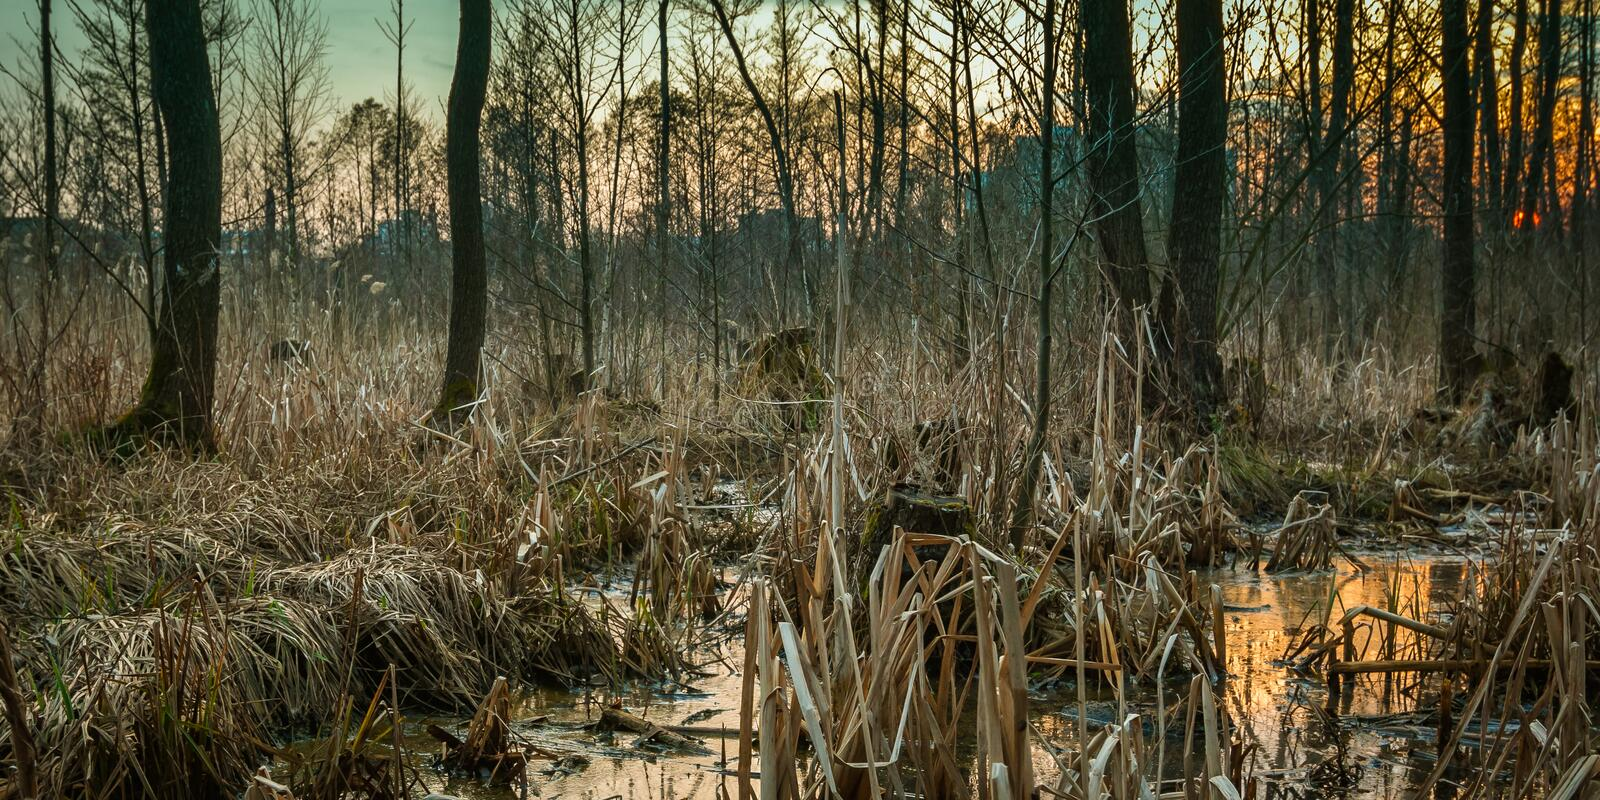 Spring swamp on the outskirts of the city. A picturesque spring marsh on the outskirts of the city stock image